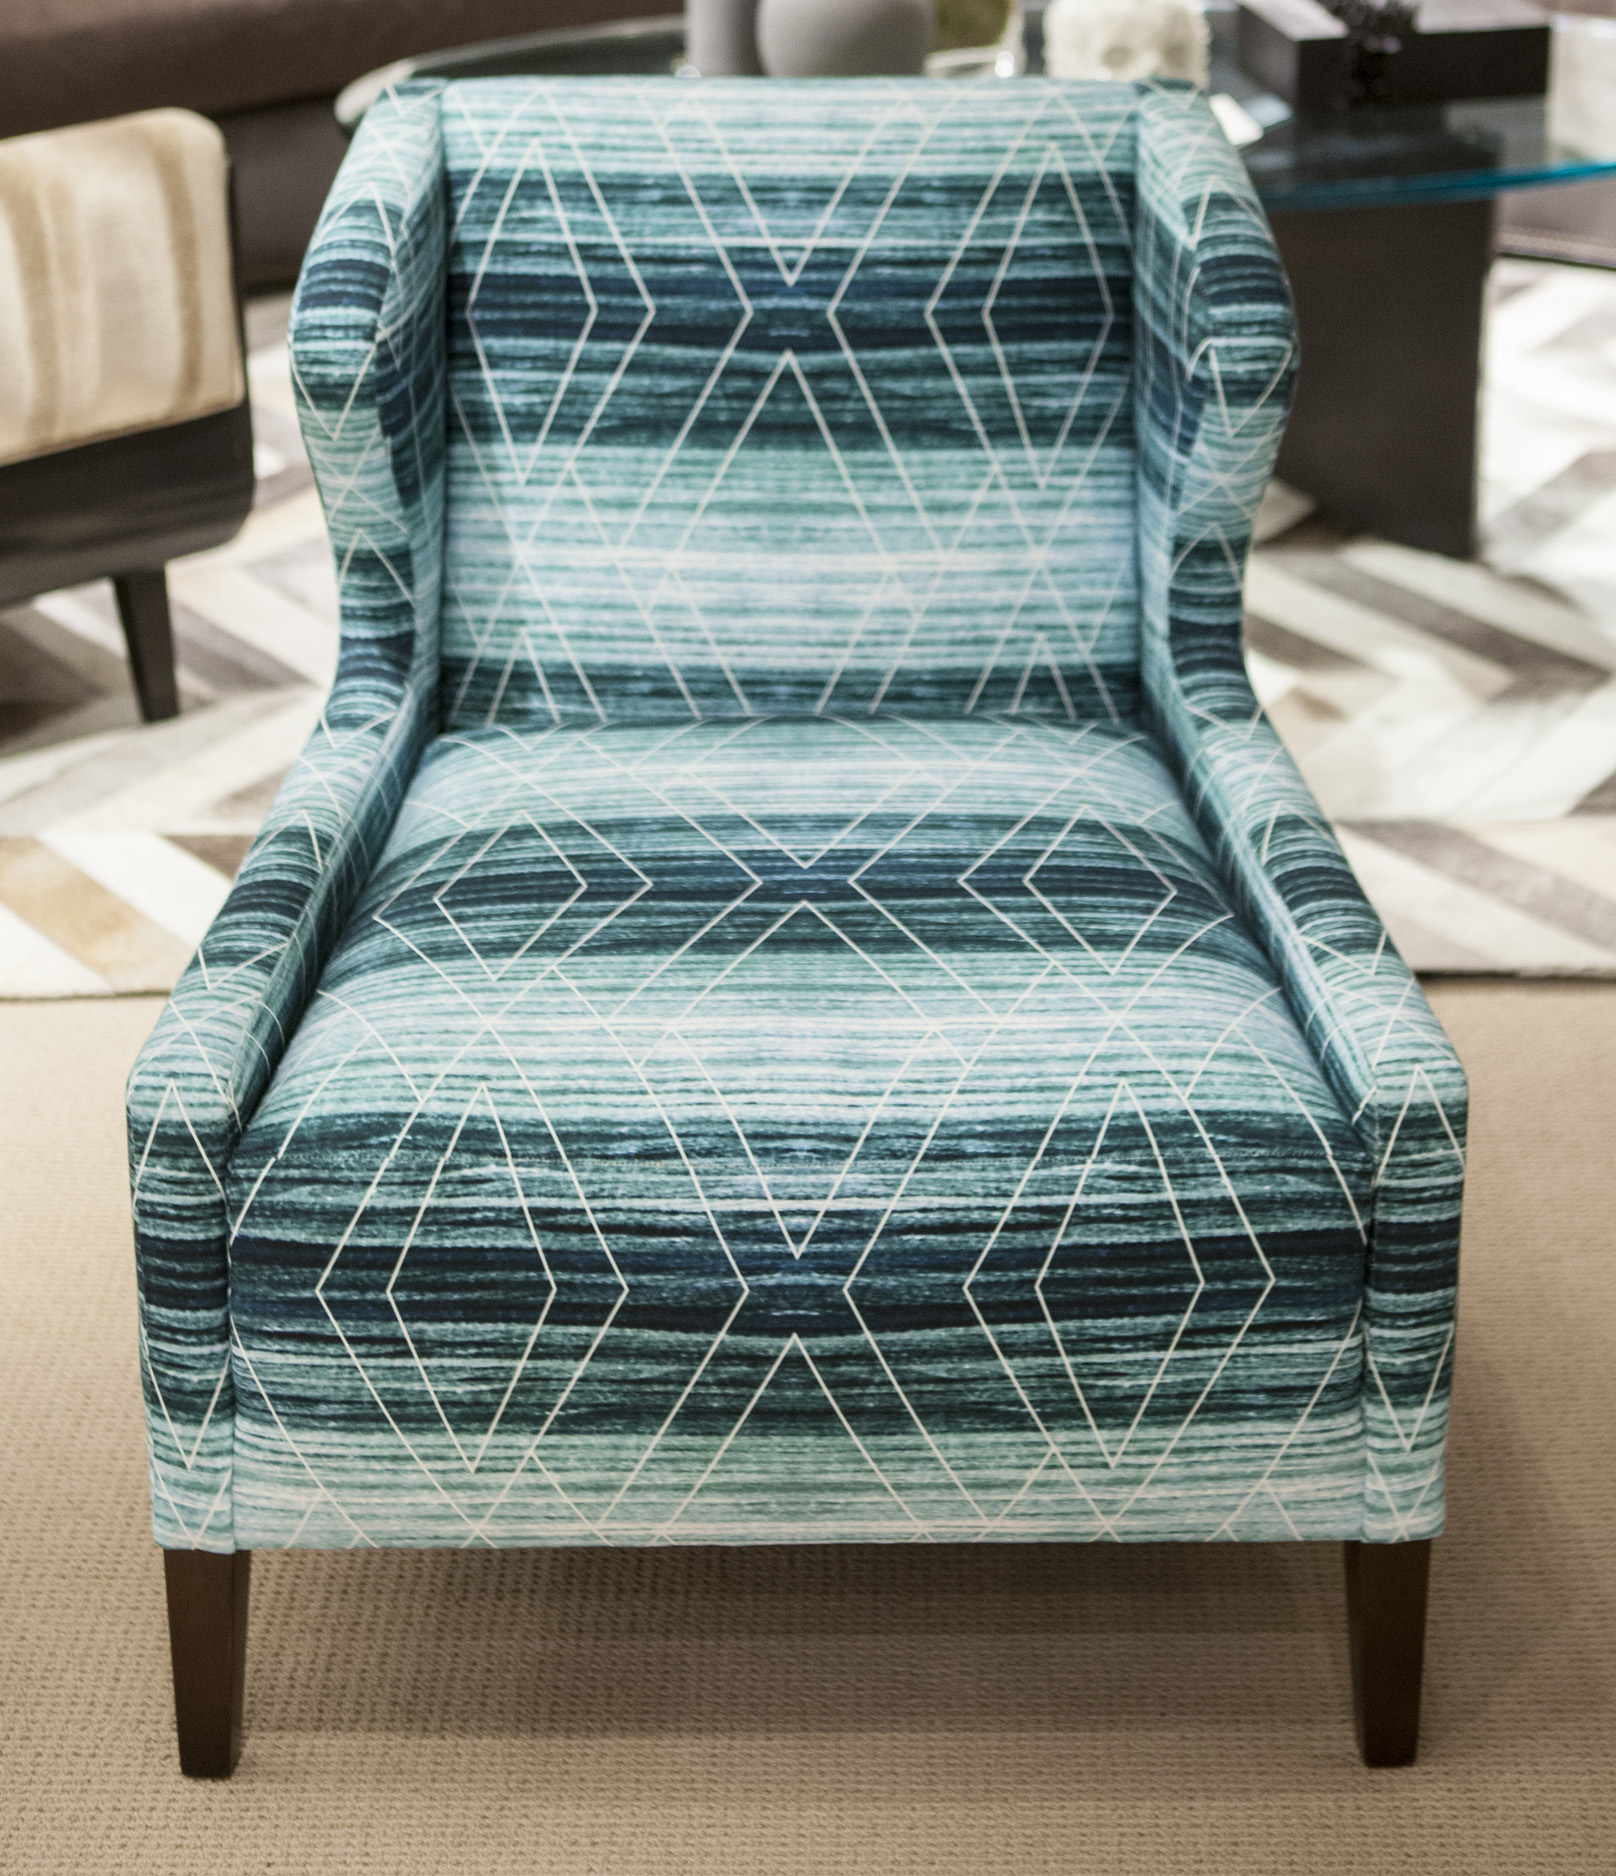 The winning team's fabric upholstered on the Kravet Williams Chair